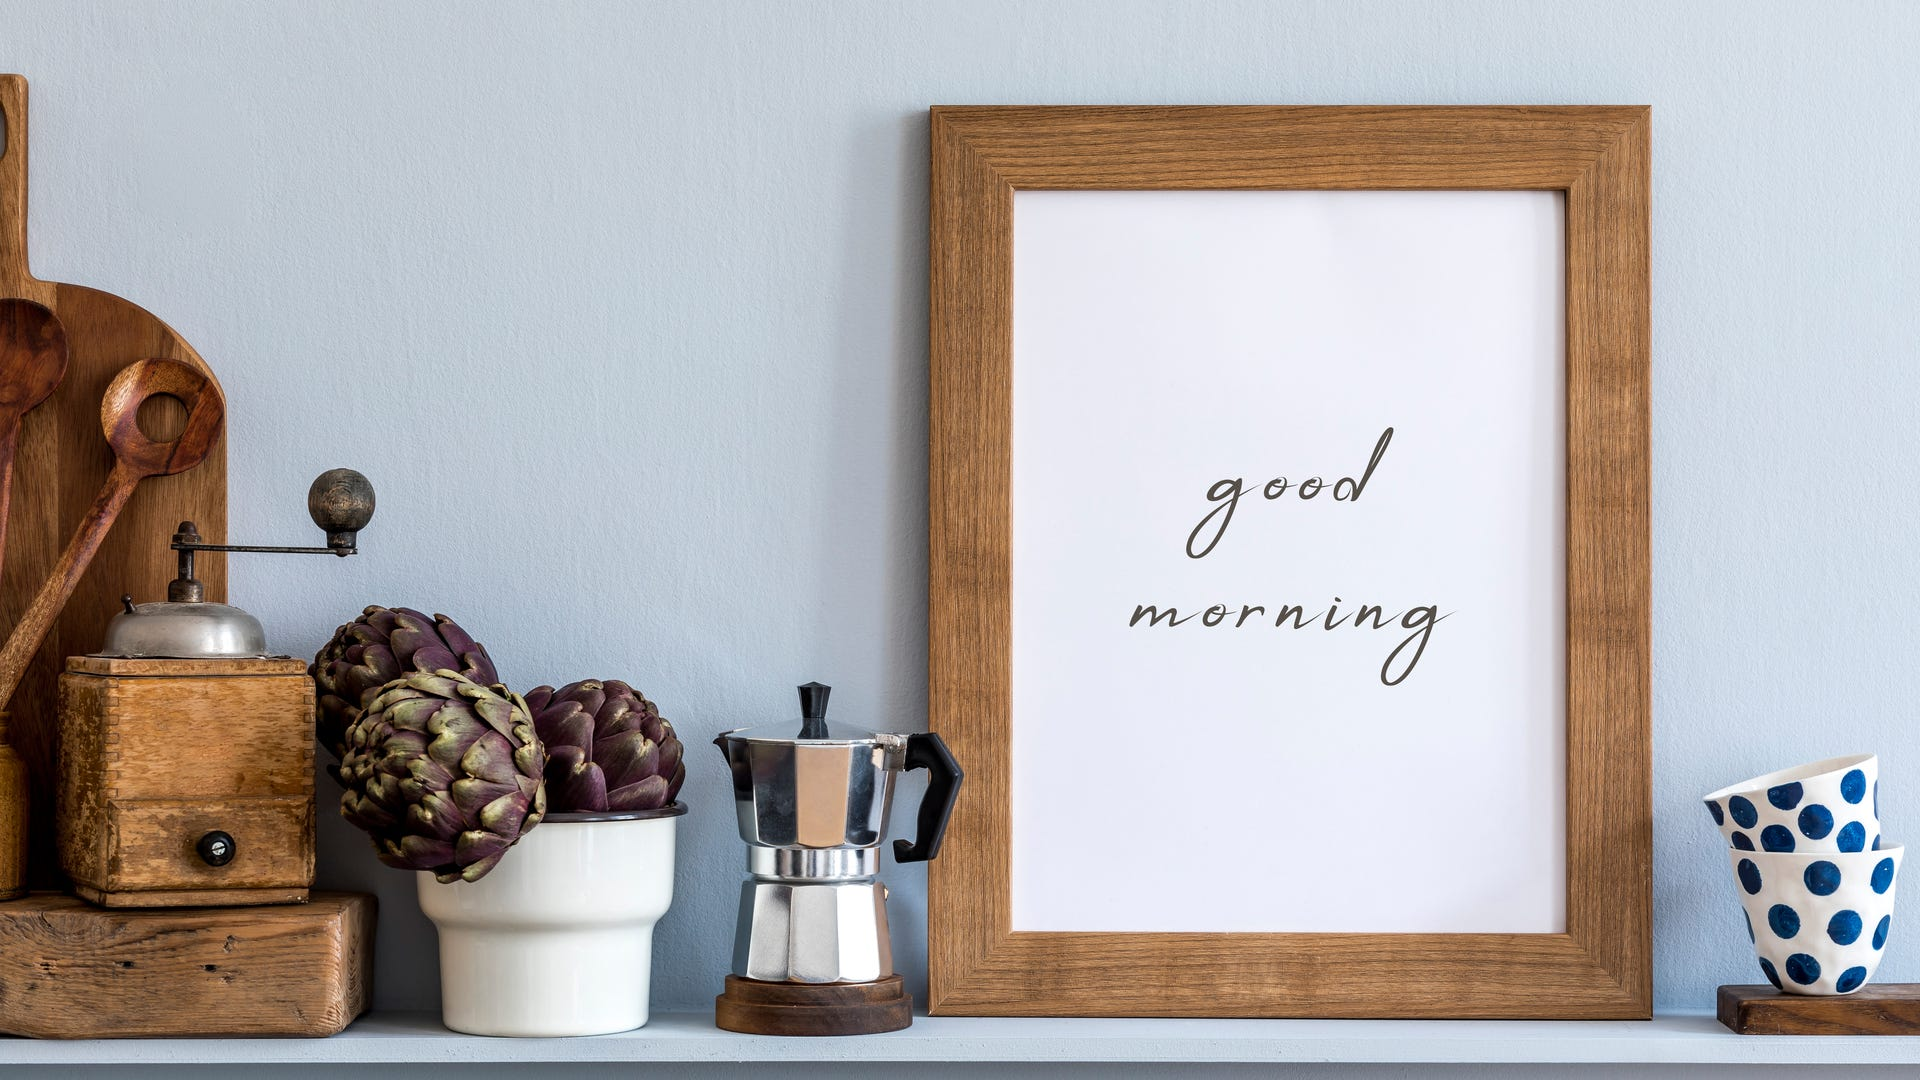 """A wooden frame around a sign that says """"Good Morning"""" next to a coffee maker."""